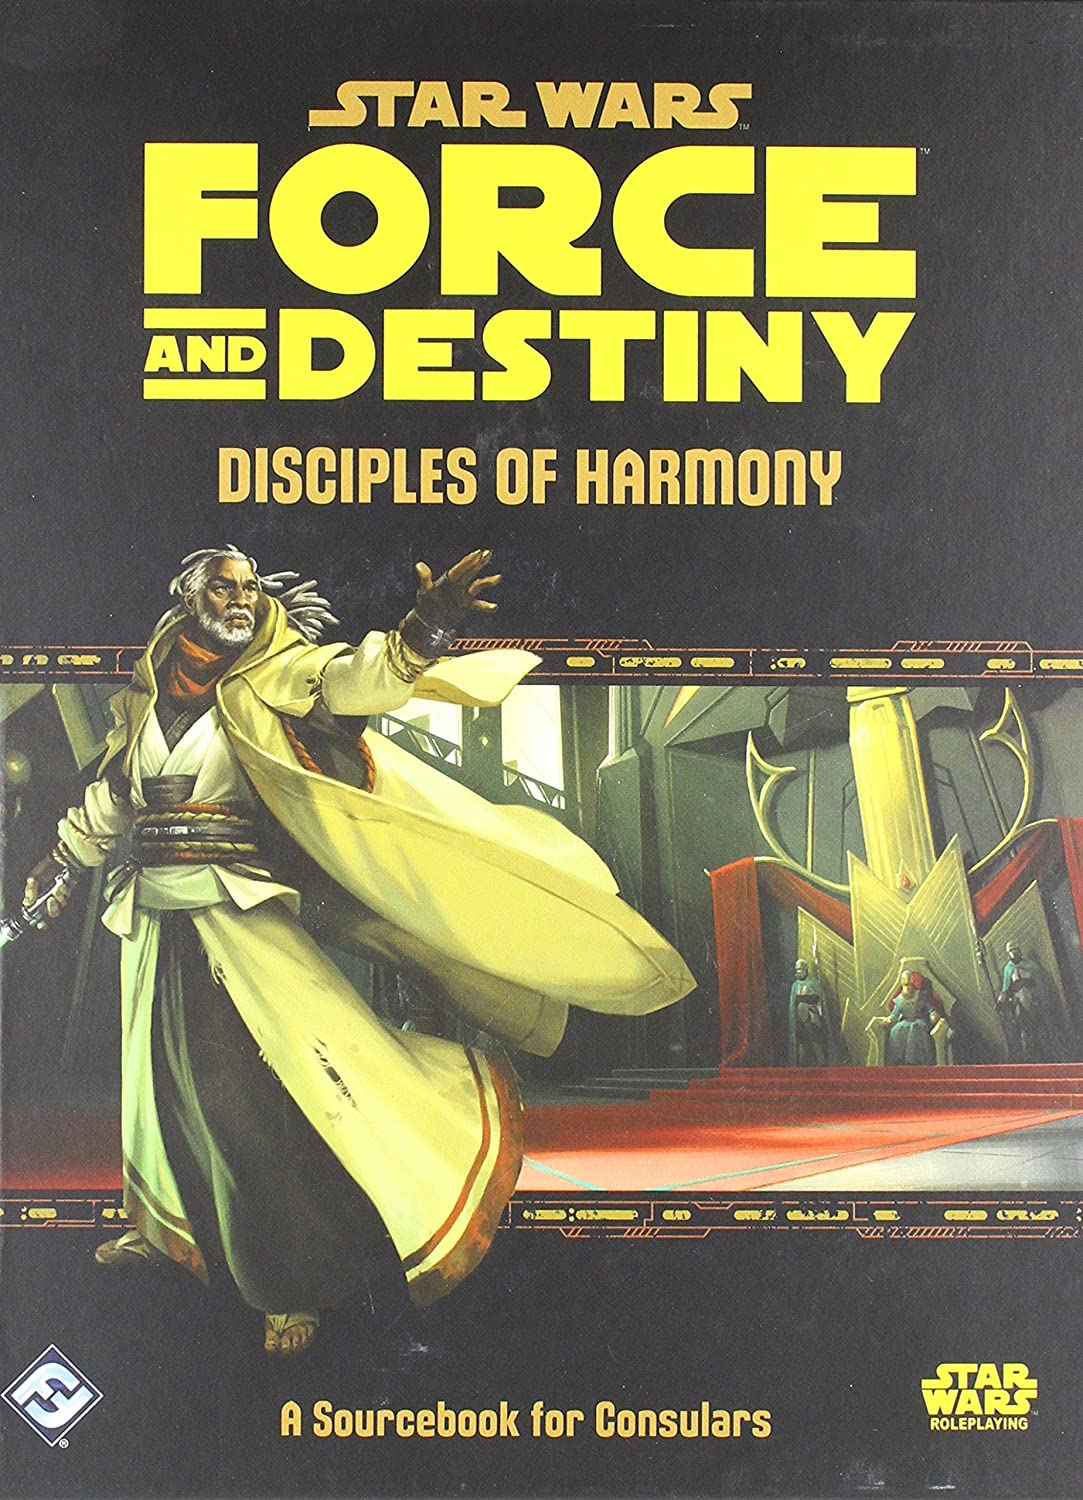 Star Wars Force and Destiny: Disciples of Harmony